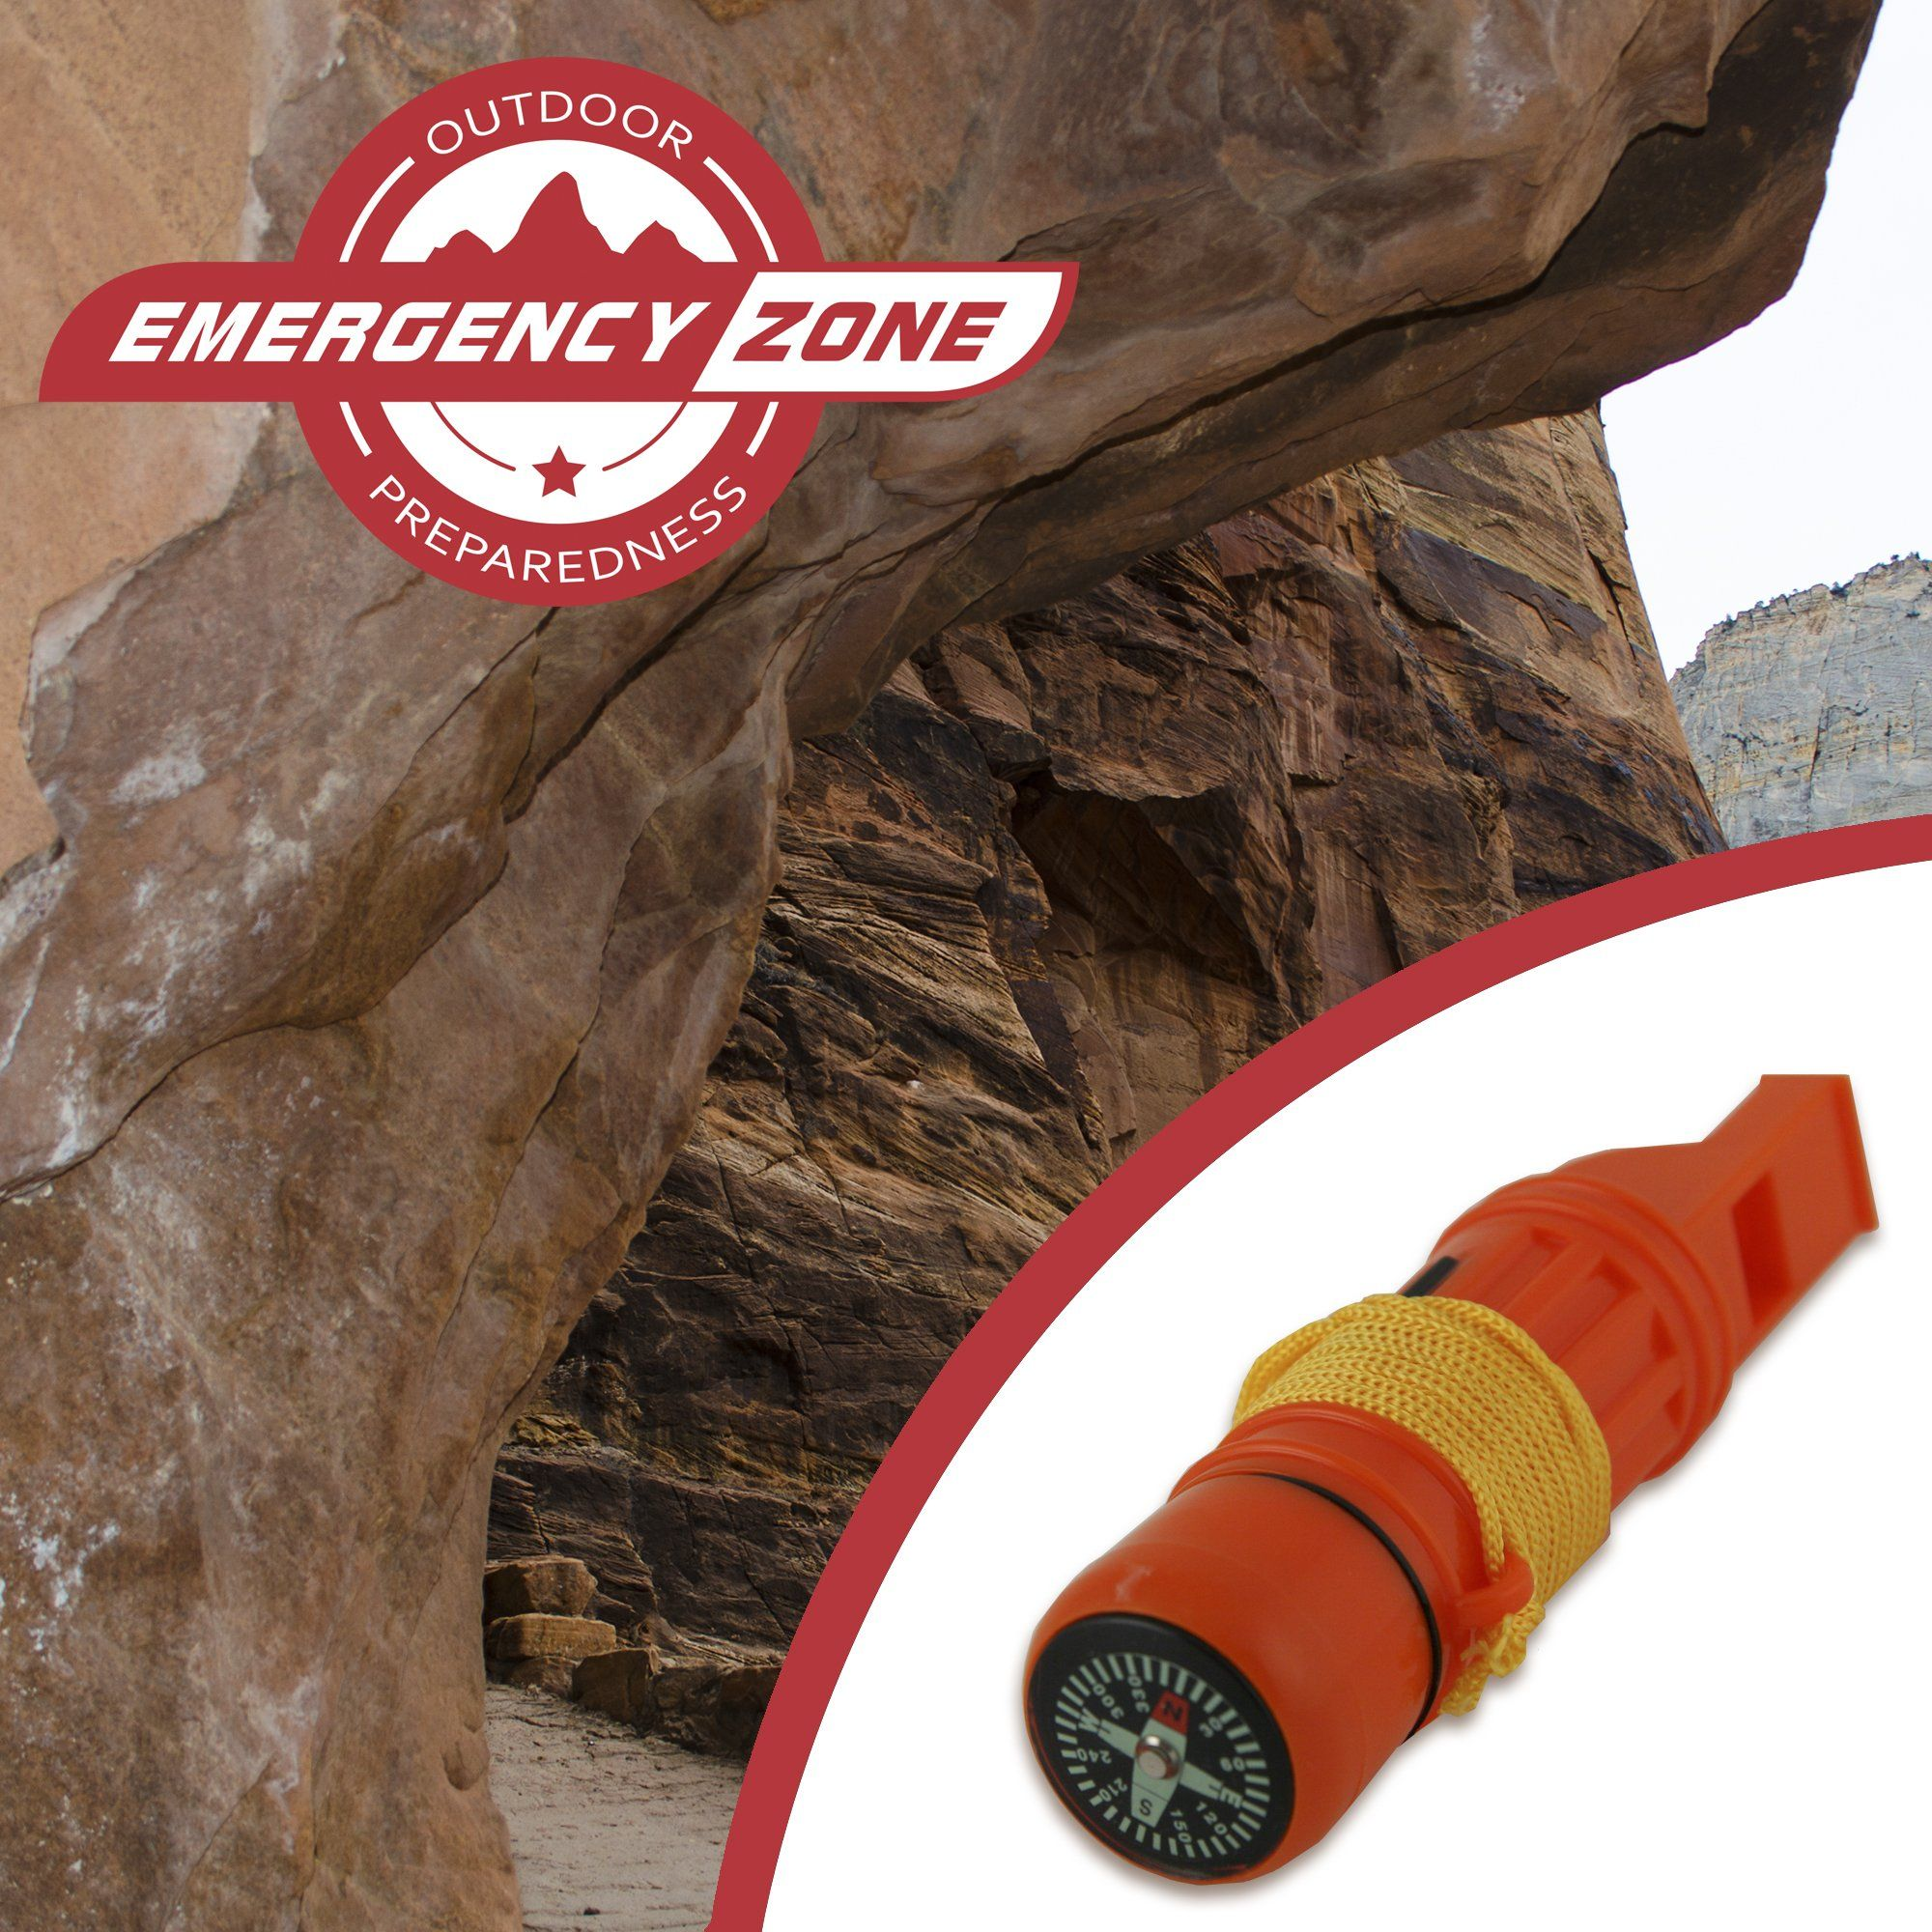 5 in 1 Survival Whistle Emergency Zone Brand 1 3 and 30